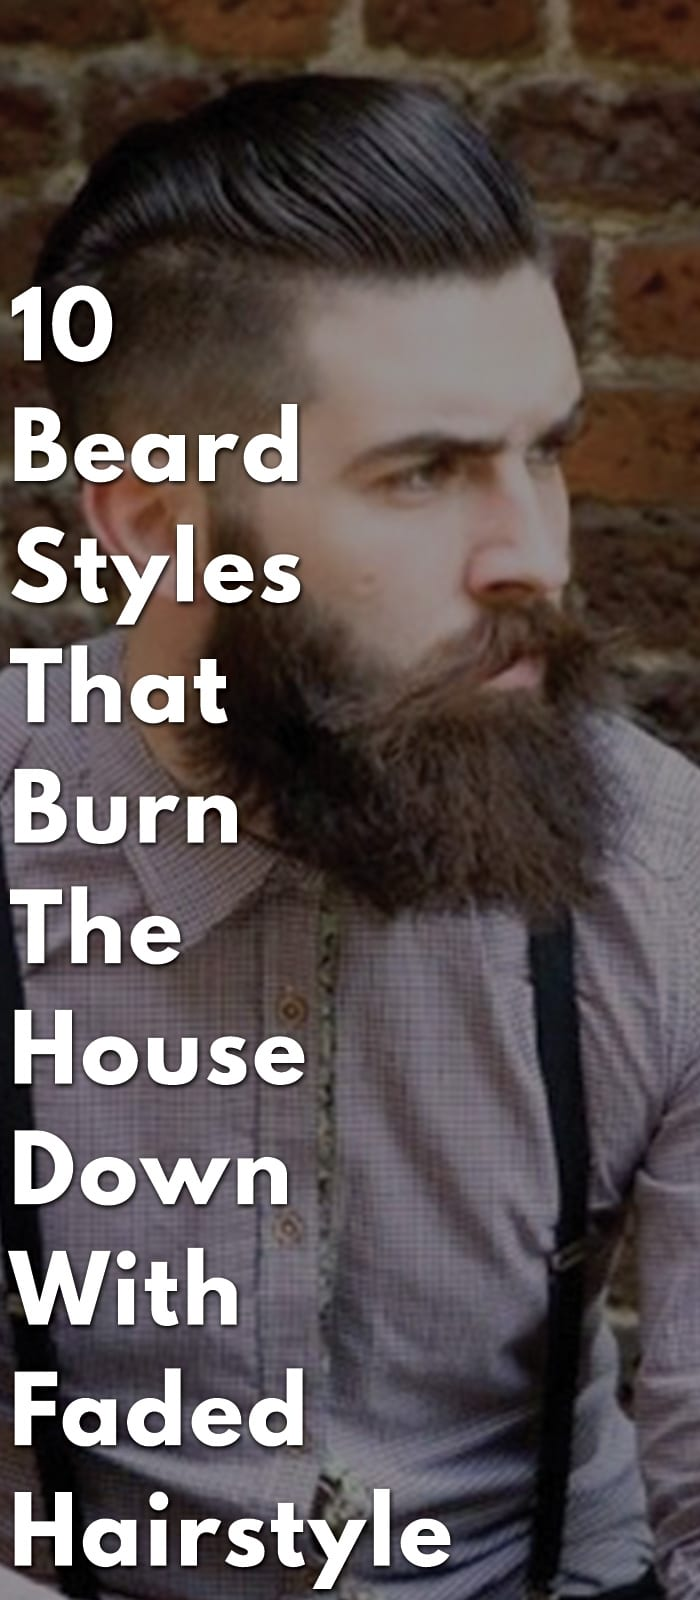 10-Beard-Styles-That-Burn-The-House-Down-With-Faded-Hairstyle.